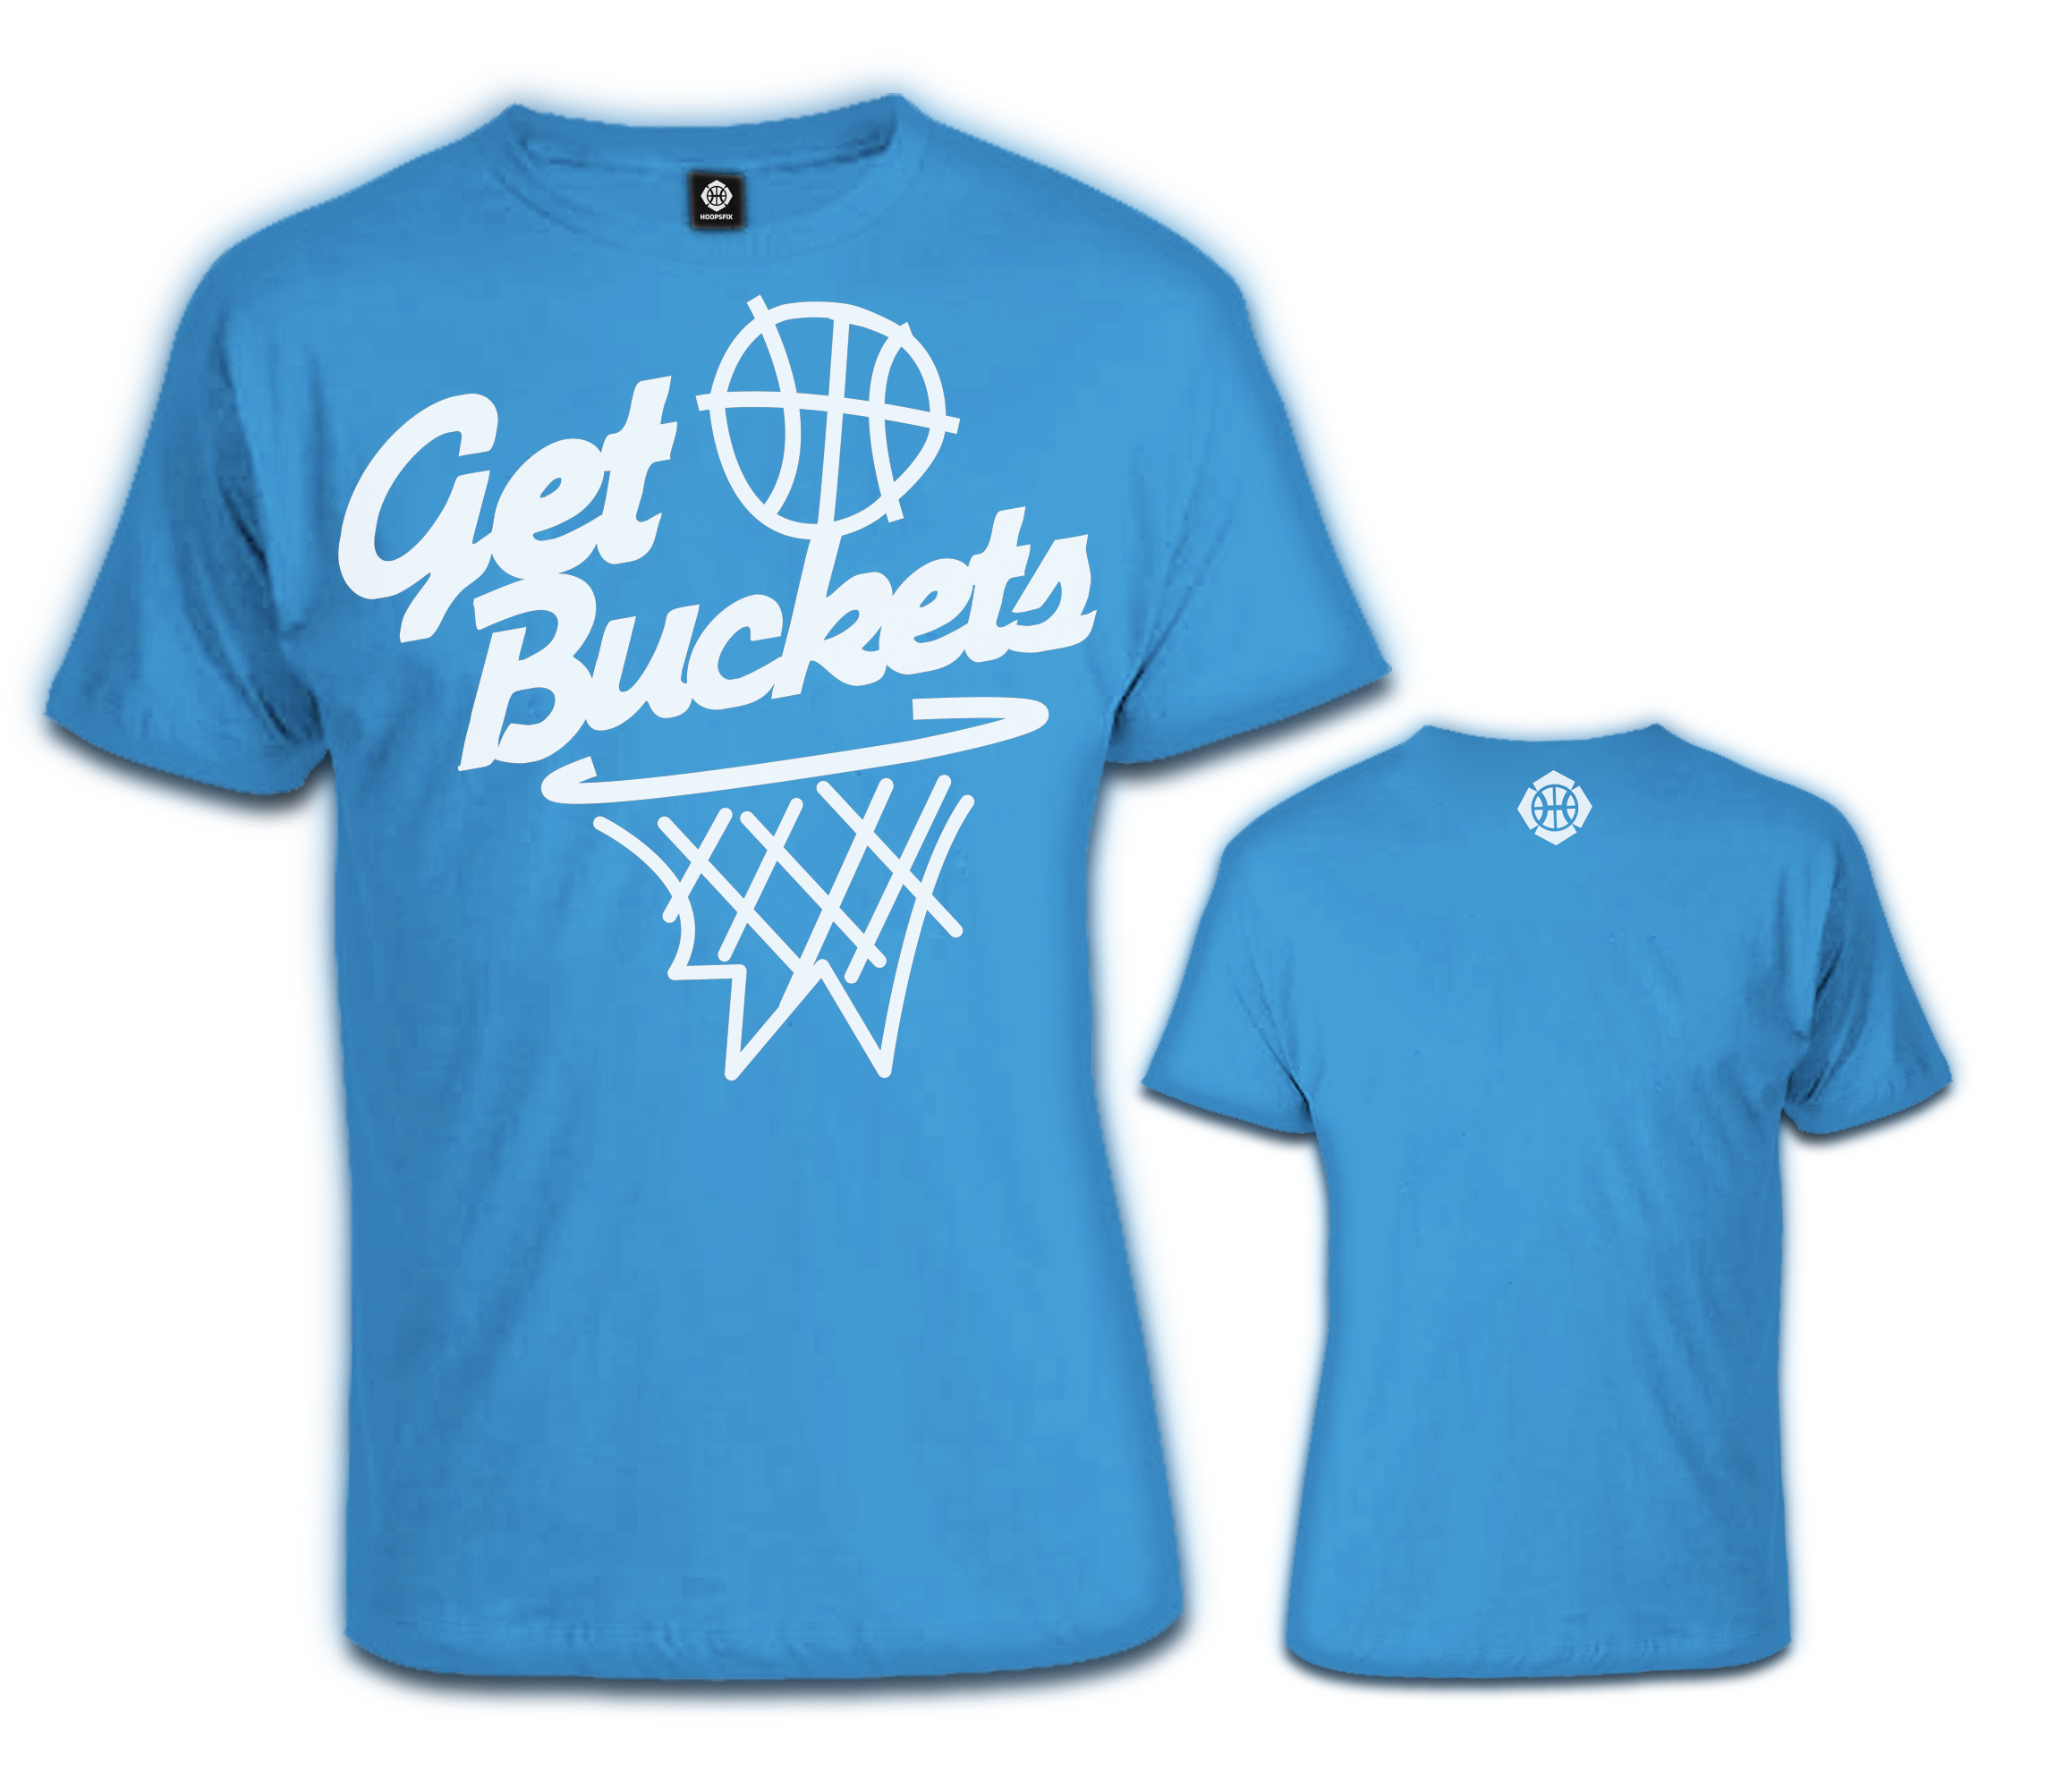 Hoopsfix - Get Buckets T-Shirt